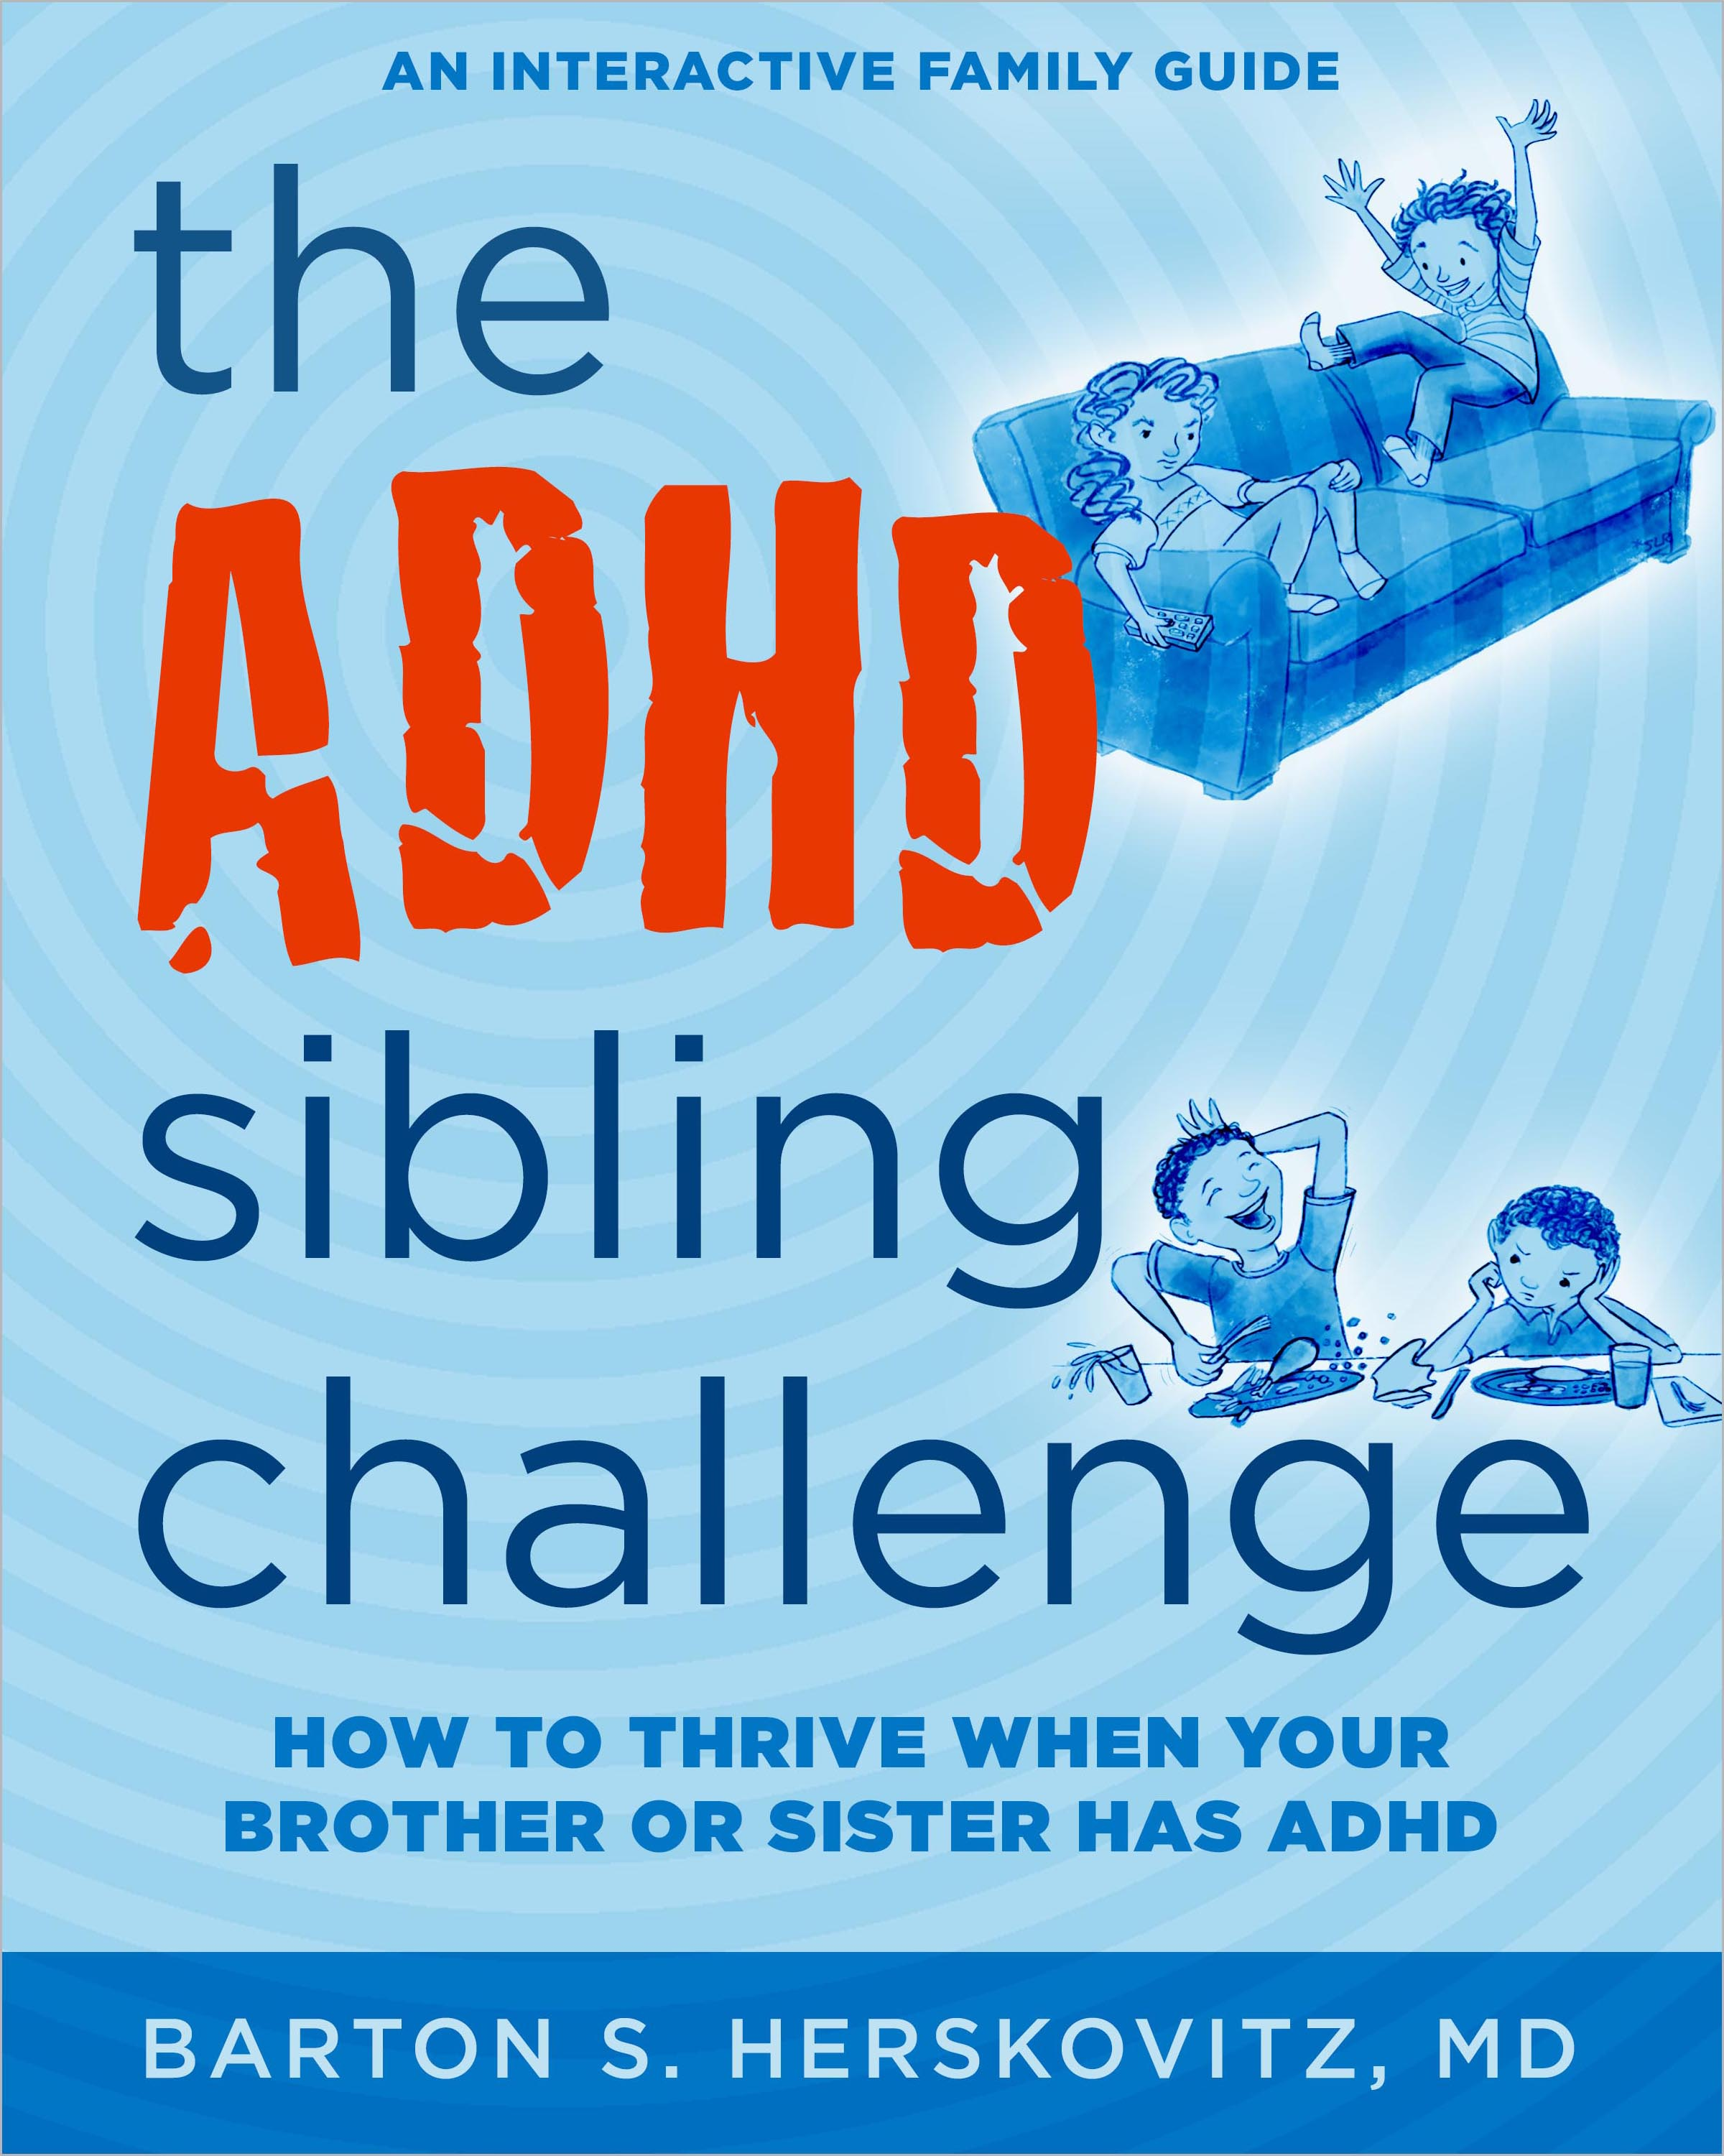 The ADHD Sibling Challenge: How To Thrive When Your Brother or Sister Has ADHD